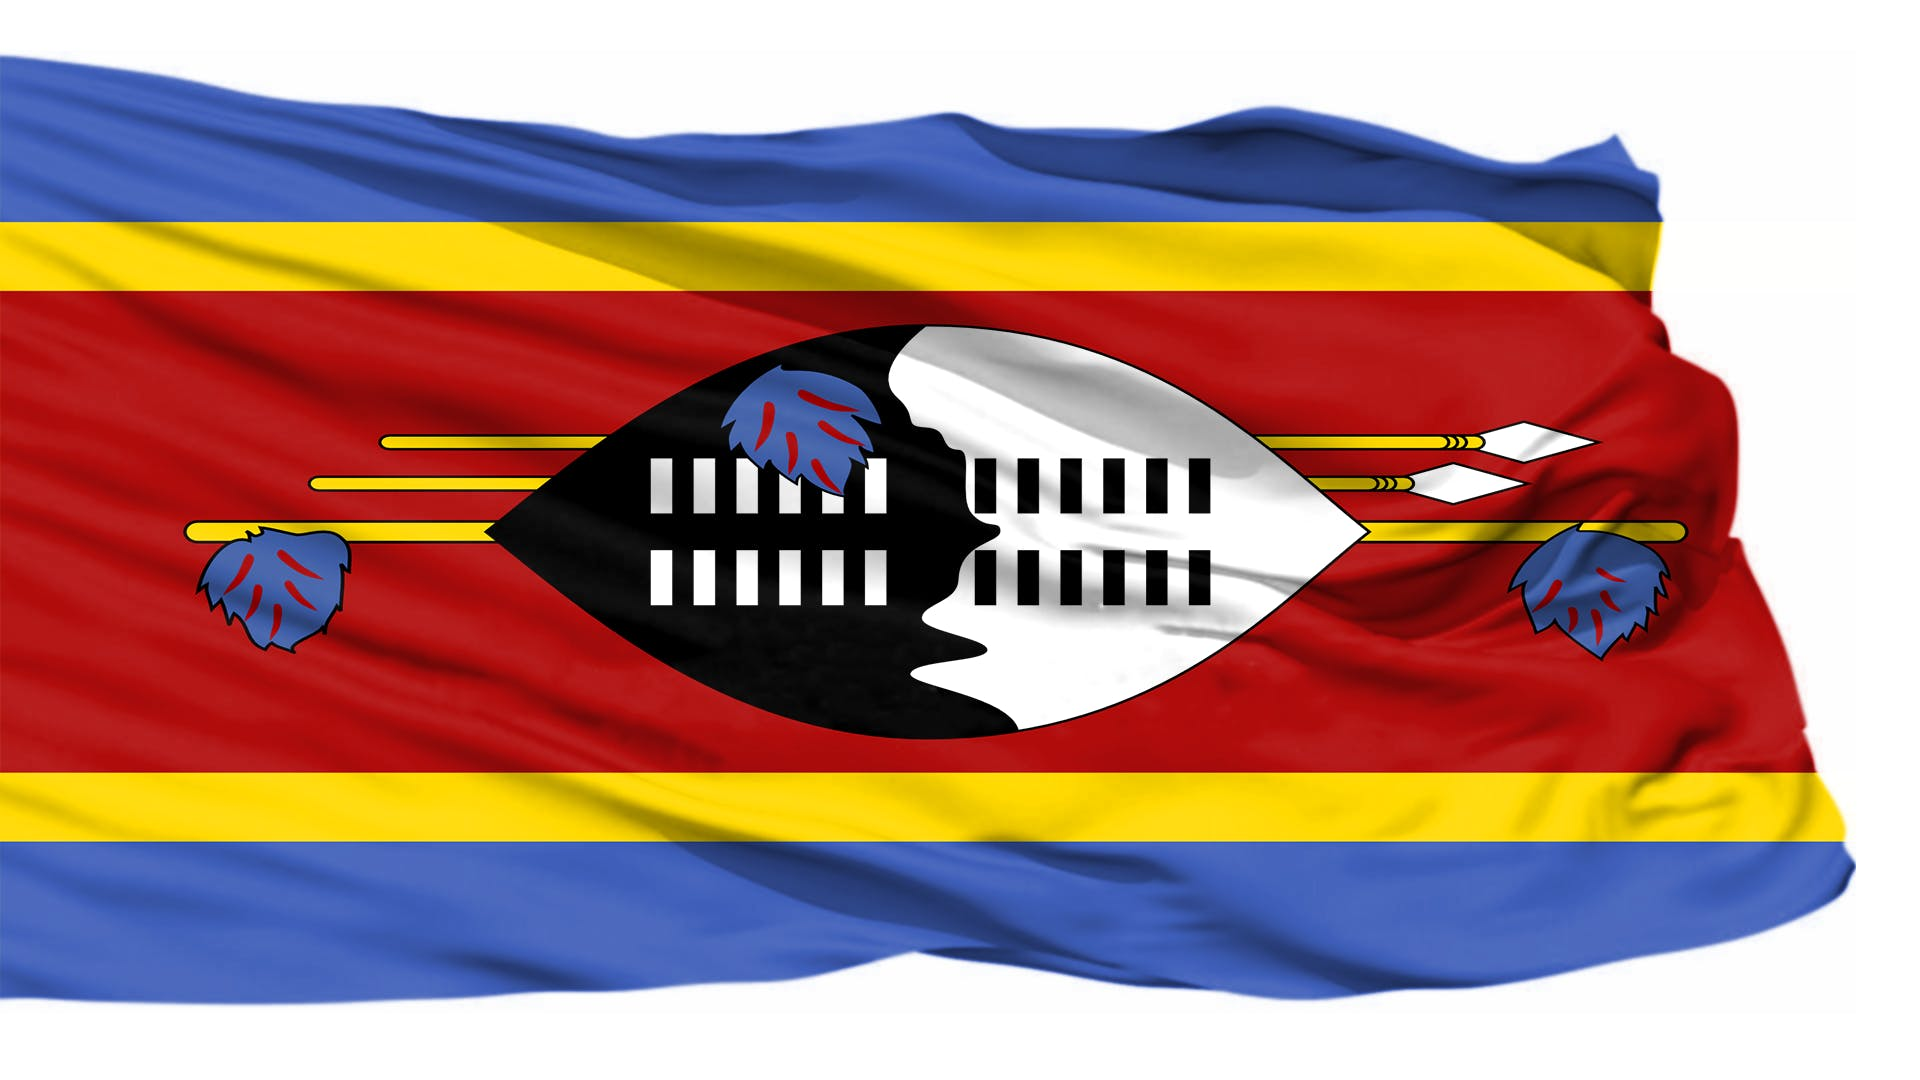 Kostenloses Stock Foto zu blowing flagge, flagge, fliegende flagge, swasiland-flagge